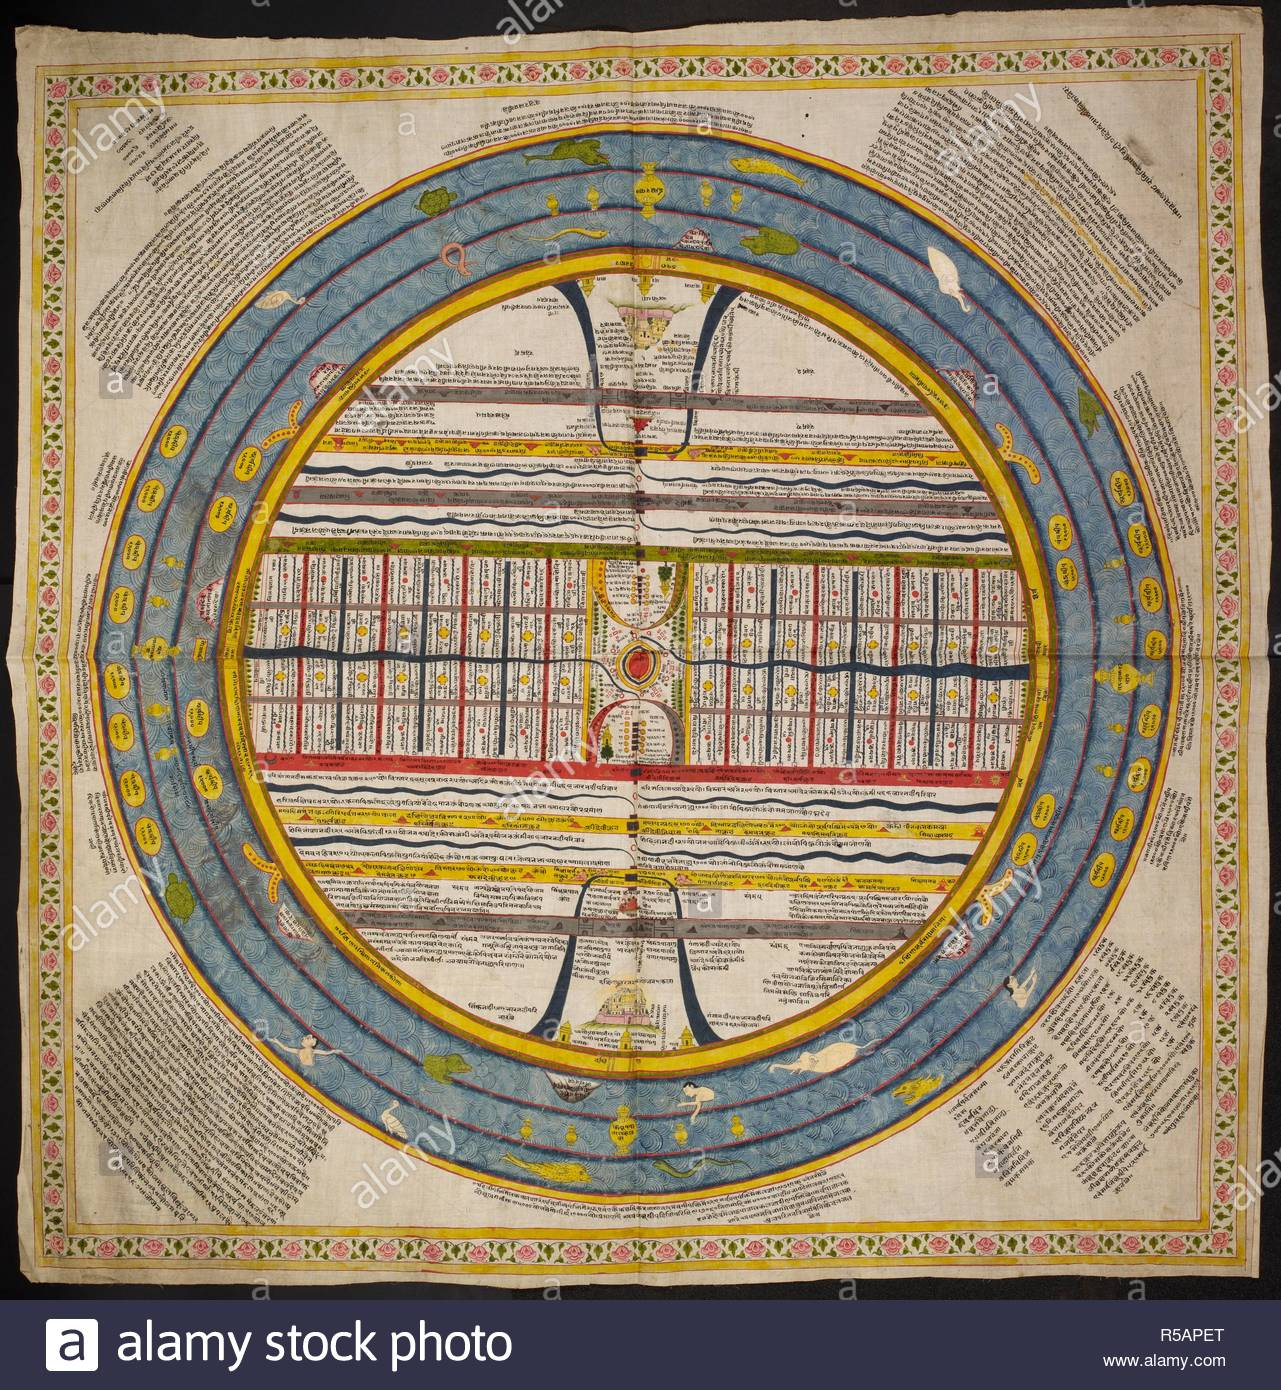 hight resolution of diagram of the universe follows the tradition found in the puranas the mahabharata ancient buddhist texts and the jain tradition